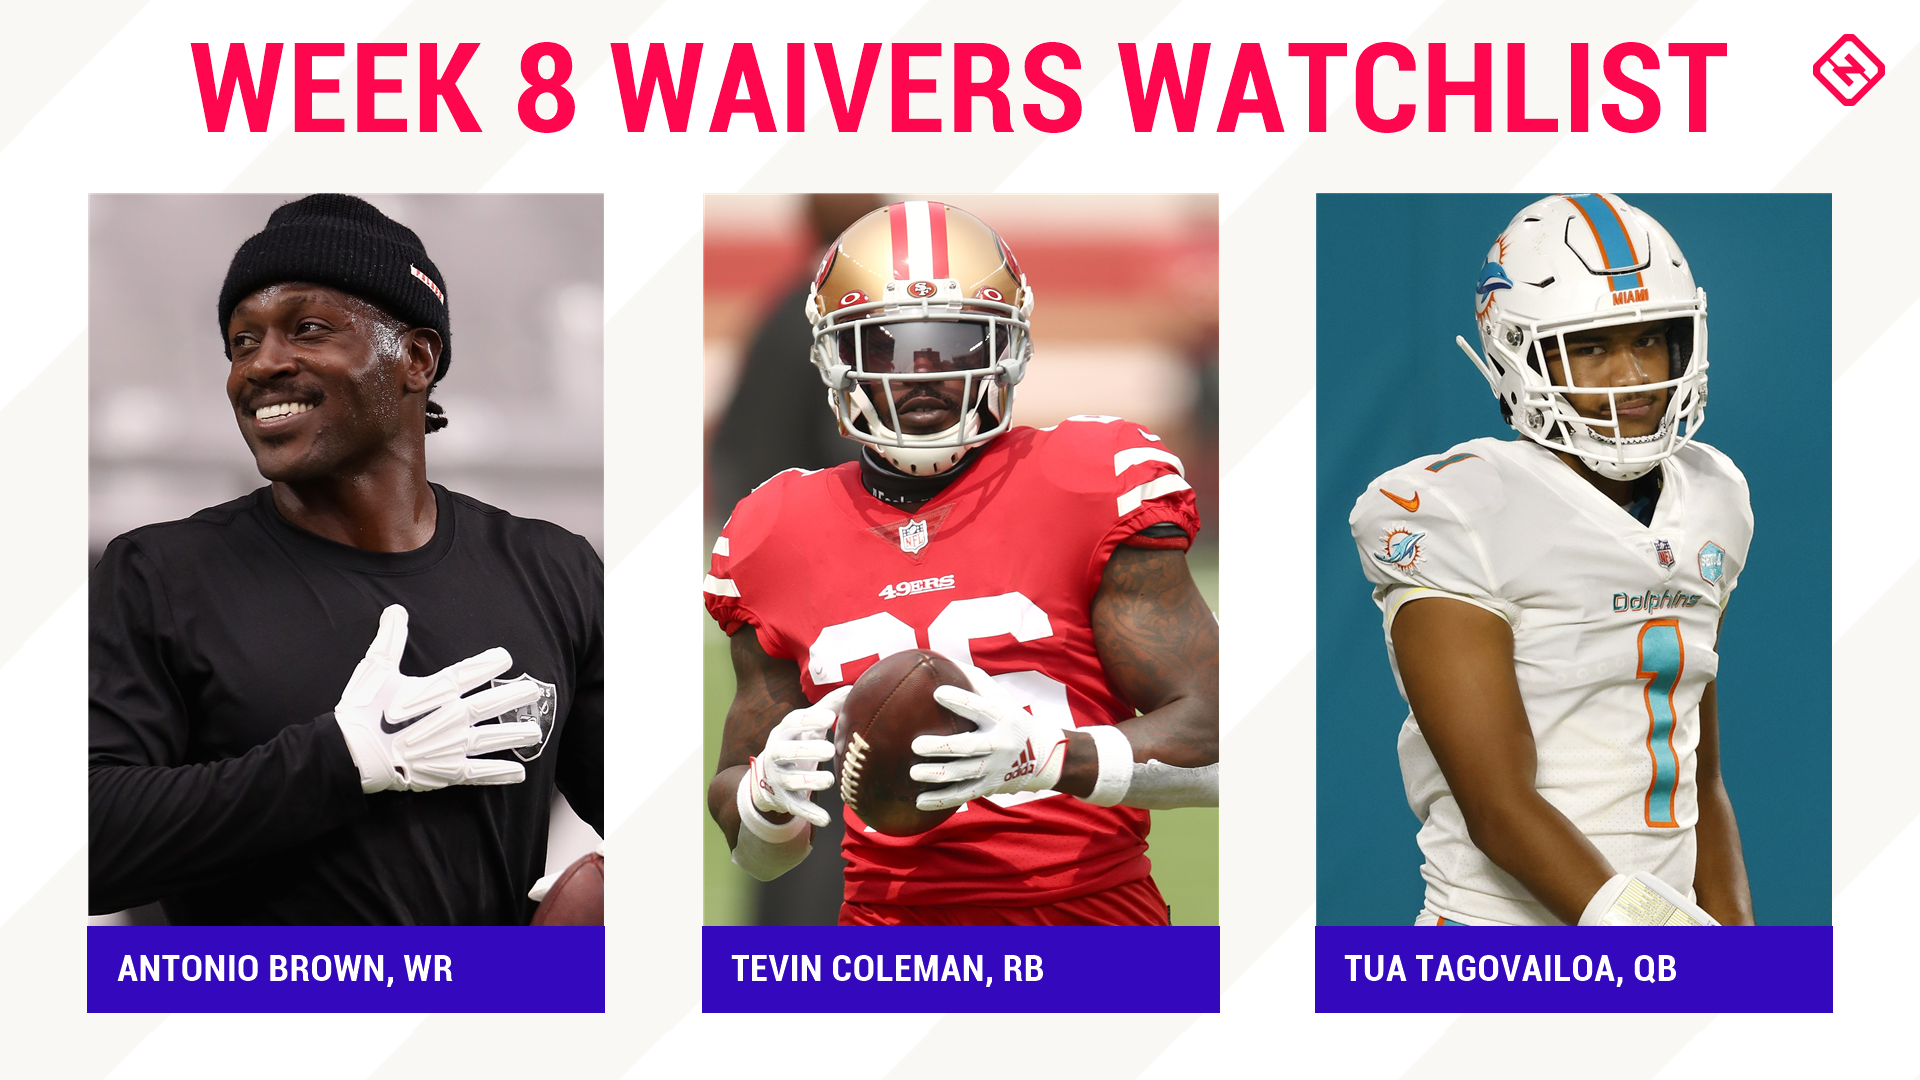 Fantasy Football Waiver Wire Watchlist for Week 8: Streaming targets, free agent sleepers include Antonio Brown, Tevin Coleman, Tua Tagovailoa